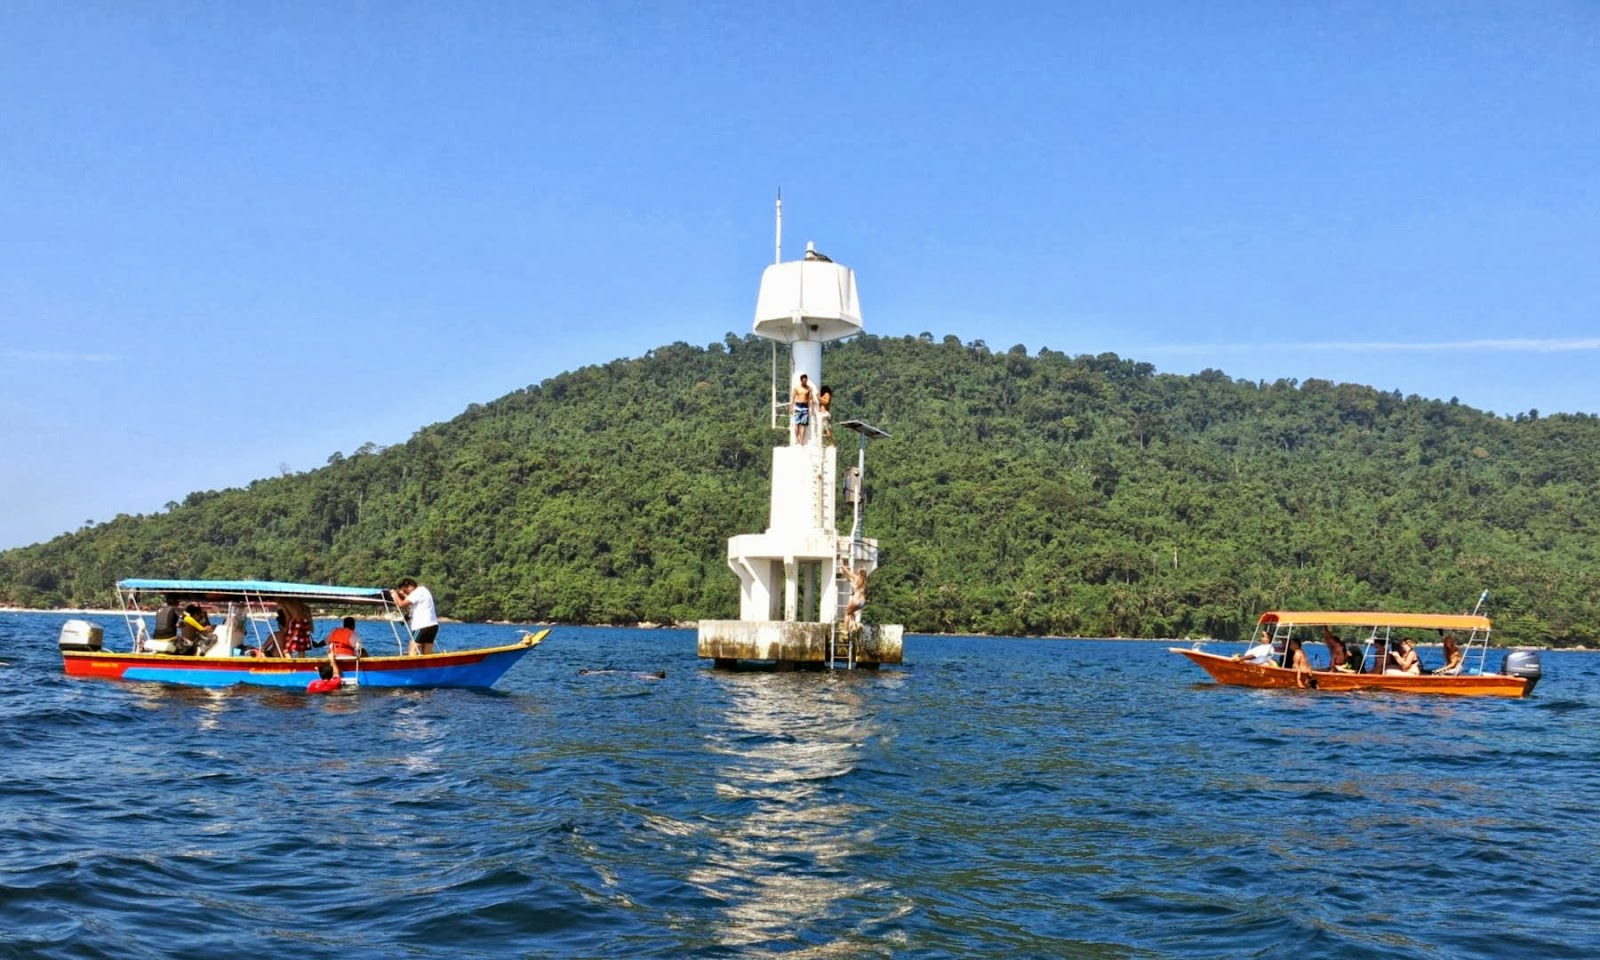 Pulau Perhentian Kecil Light Station Sea Diving Jumping